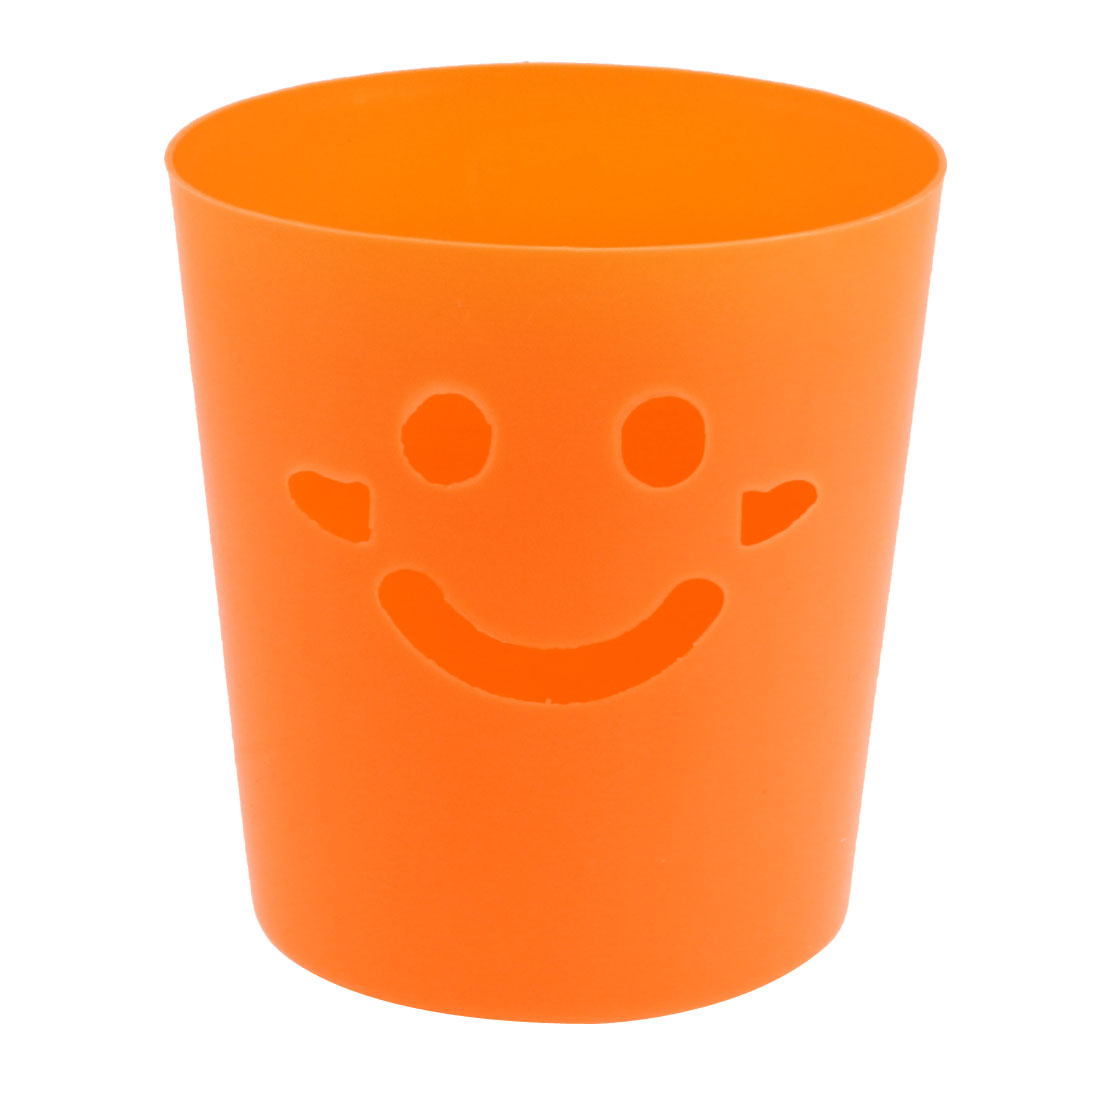 Plastic Smiling Face Design Mini Trash Can Storage Case Holder Bucket Orange